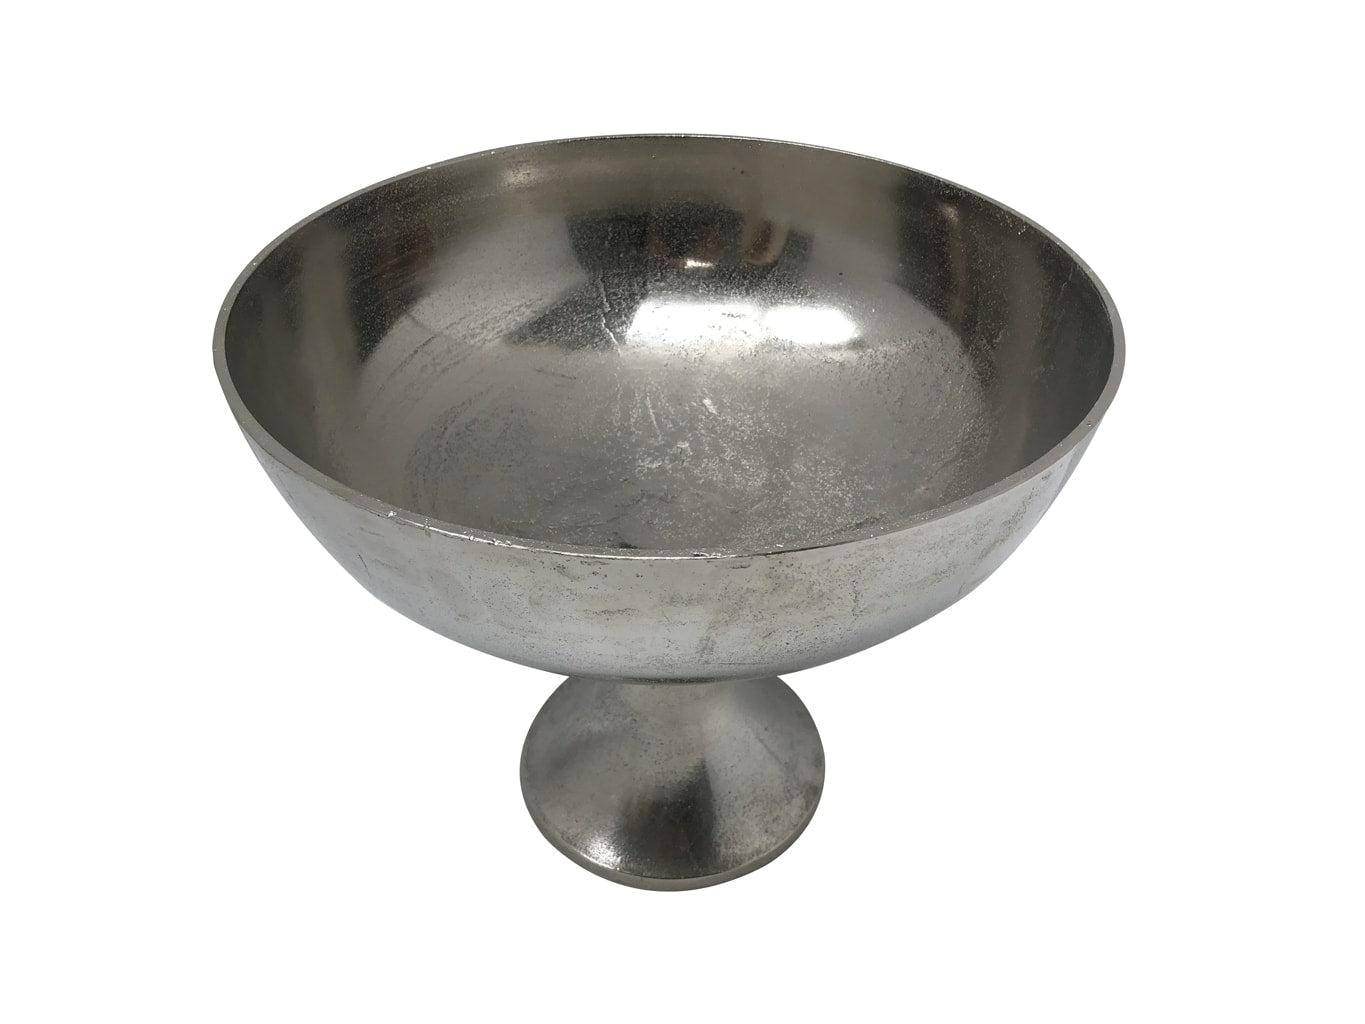 Silver bowl on a stand, metal finish.